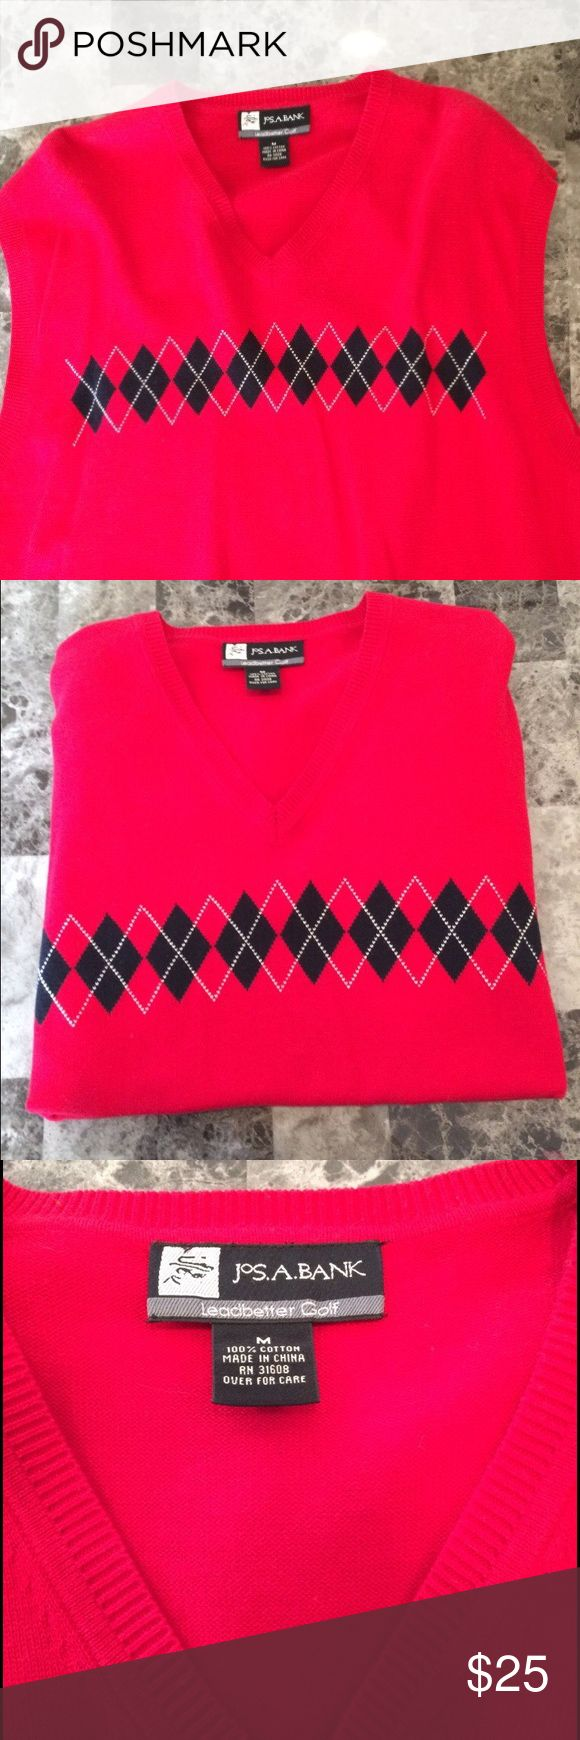 Red and black argyle sweater vest Red and black argyle sweater vest. Joseph A. Bank brand. Leadbetter Golf. Men's size M. Rarely worn and kept clean. Bought to go with those creepers. Joseph A. Bank Sweaters V-Neck